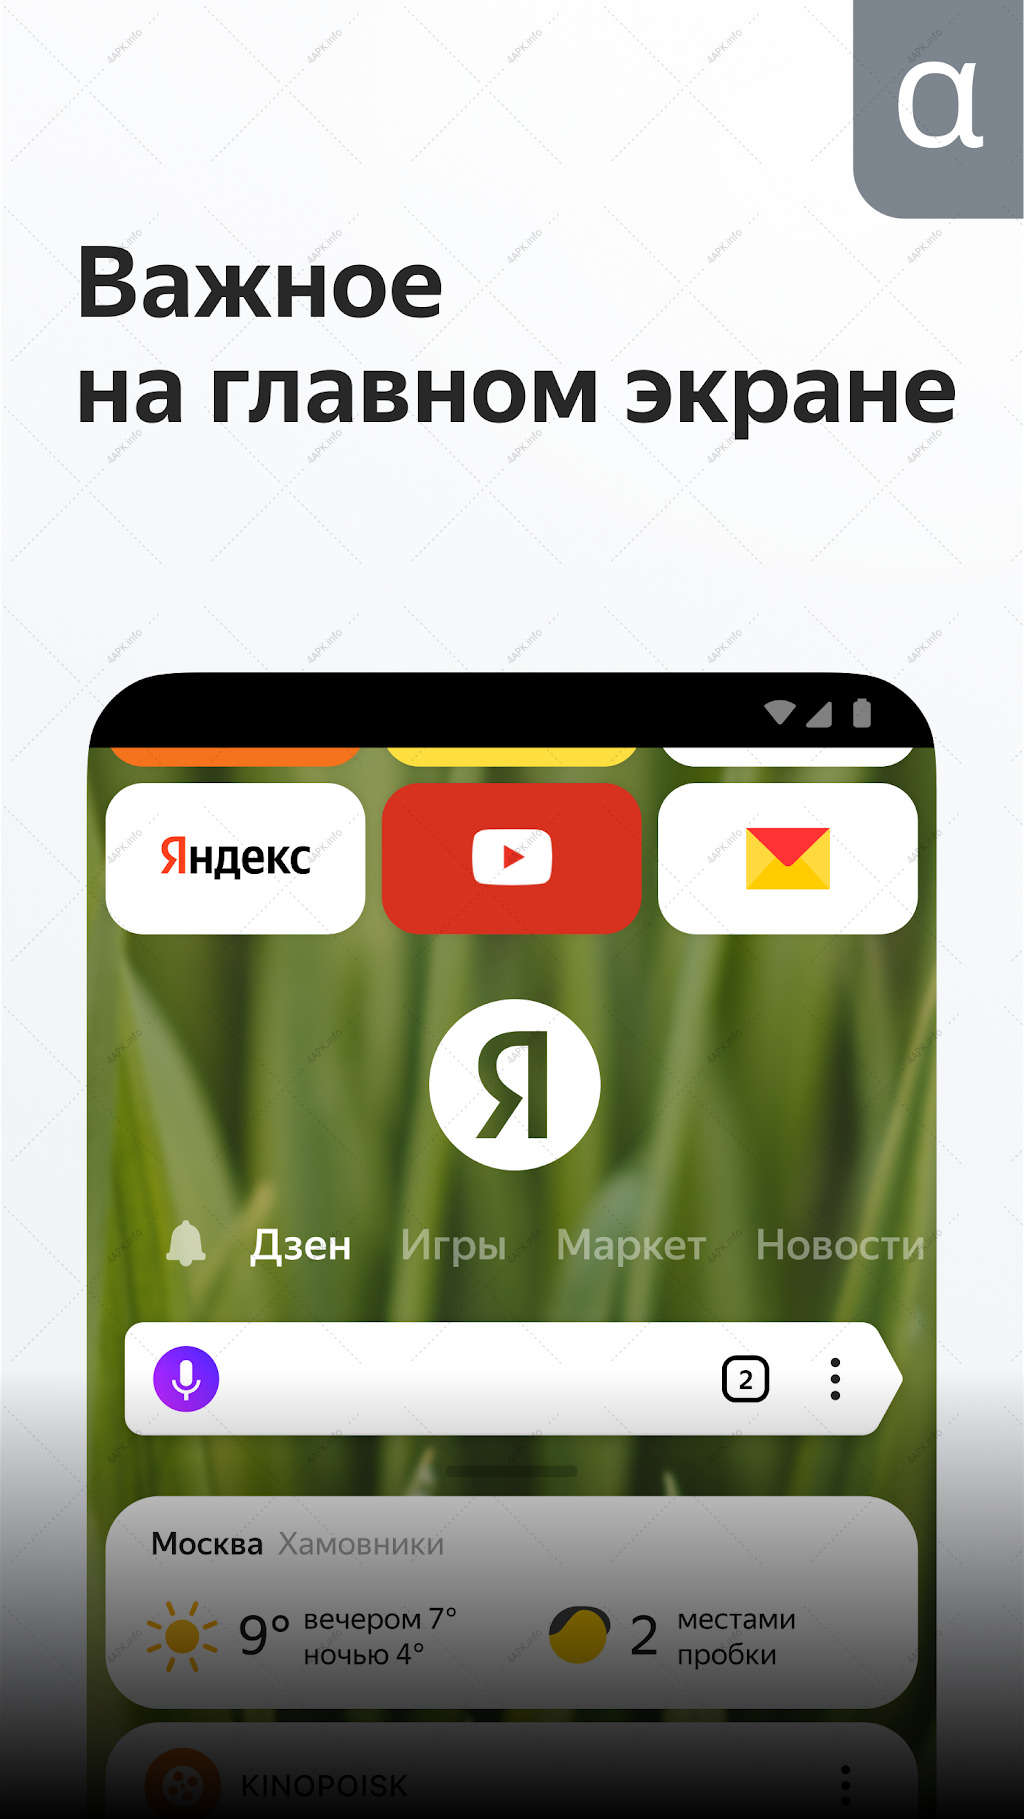 Яндекс.Браузер (альфа) screenshot